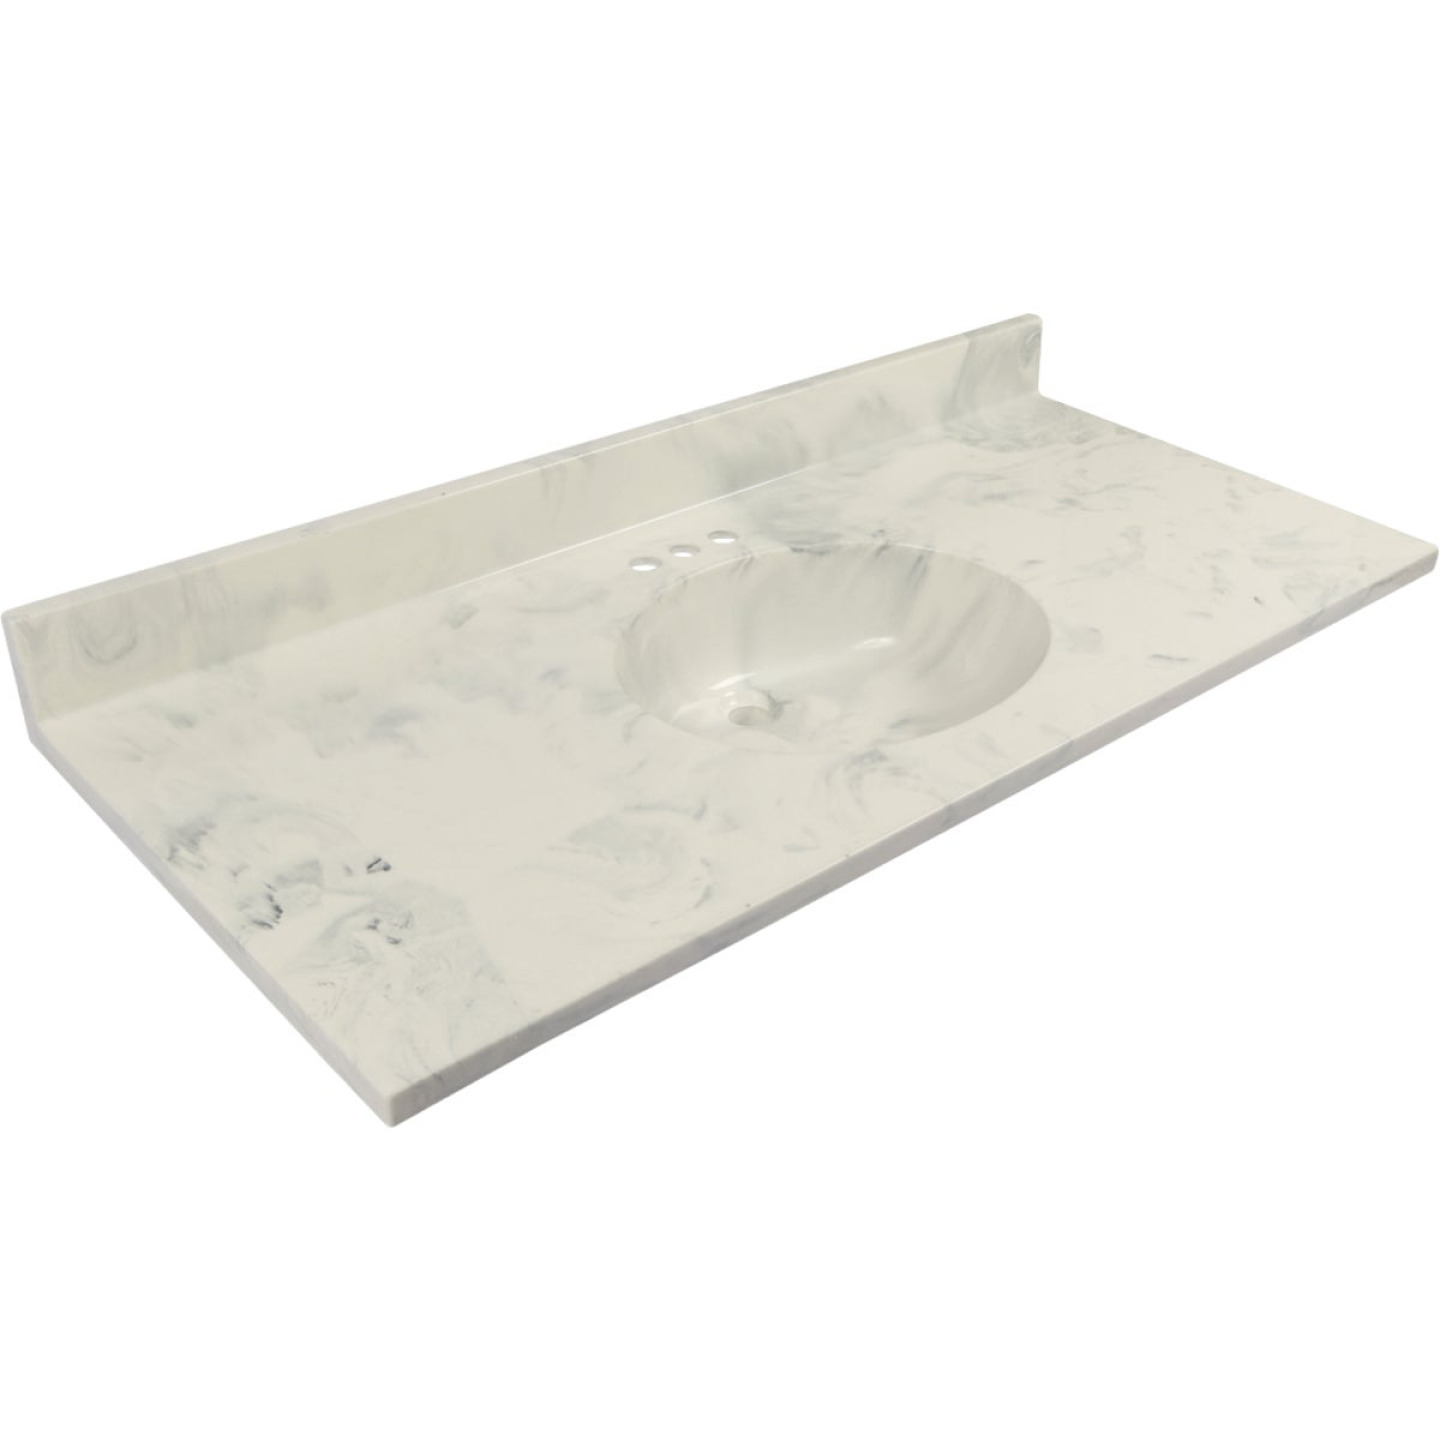 Modular Vanity Tops 49 In. W x 22 In. D Marbled Dove Gray Cultured Marble Flat Edge Vanity Top with Oval Bowl Image 1